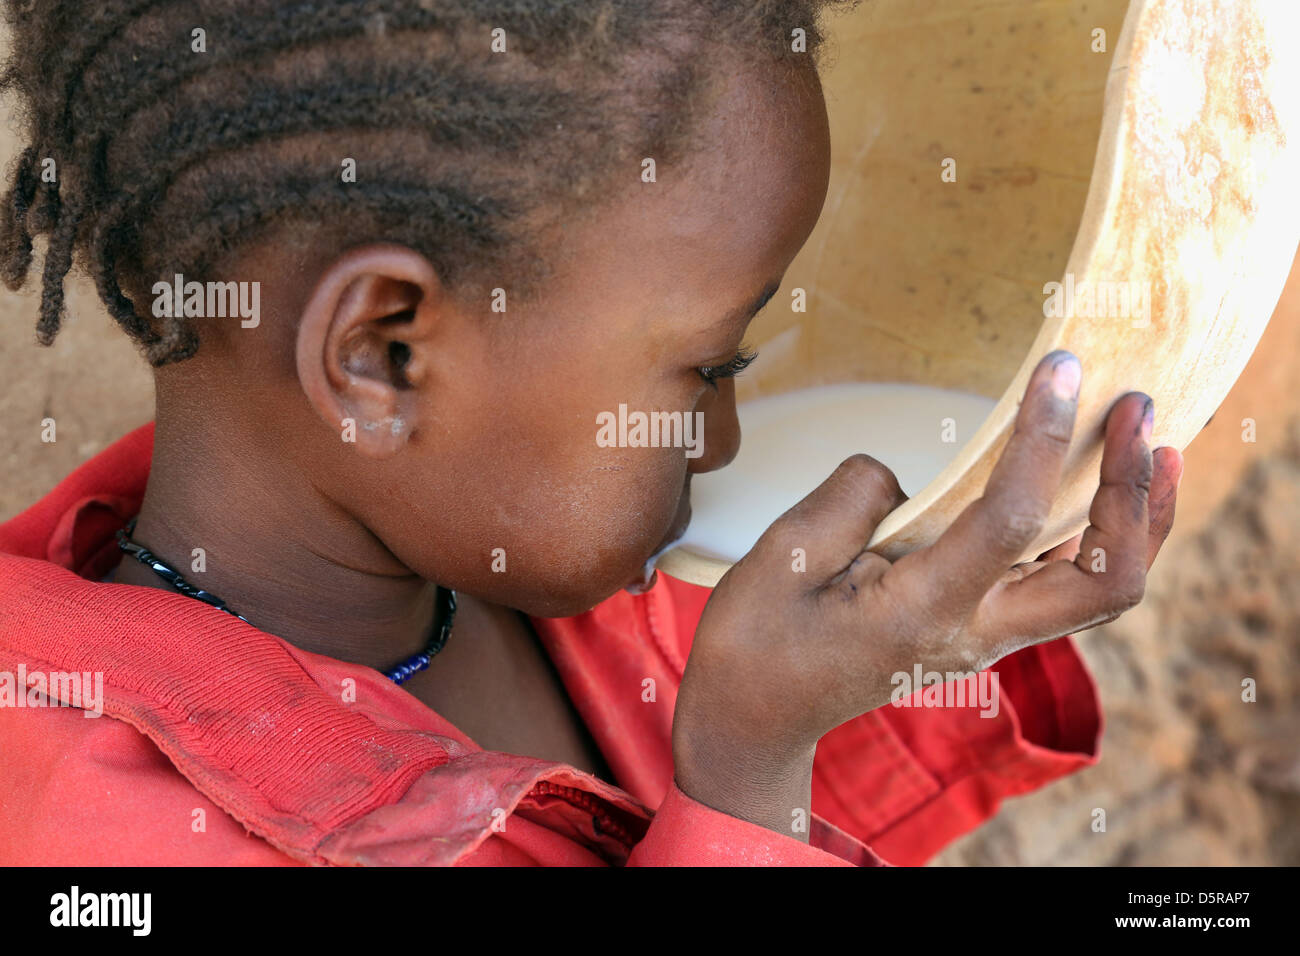 Girl drinks cow's milk from a calabash, Burkina Faso - Stock Image